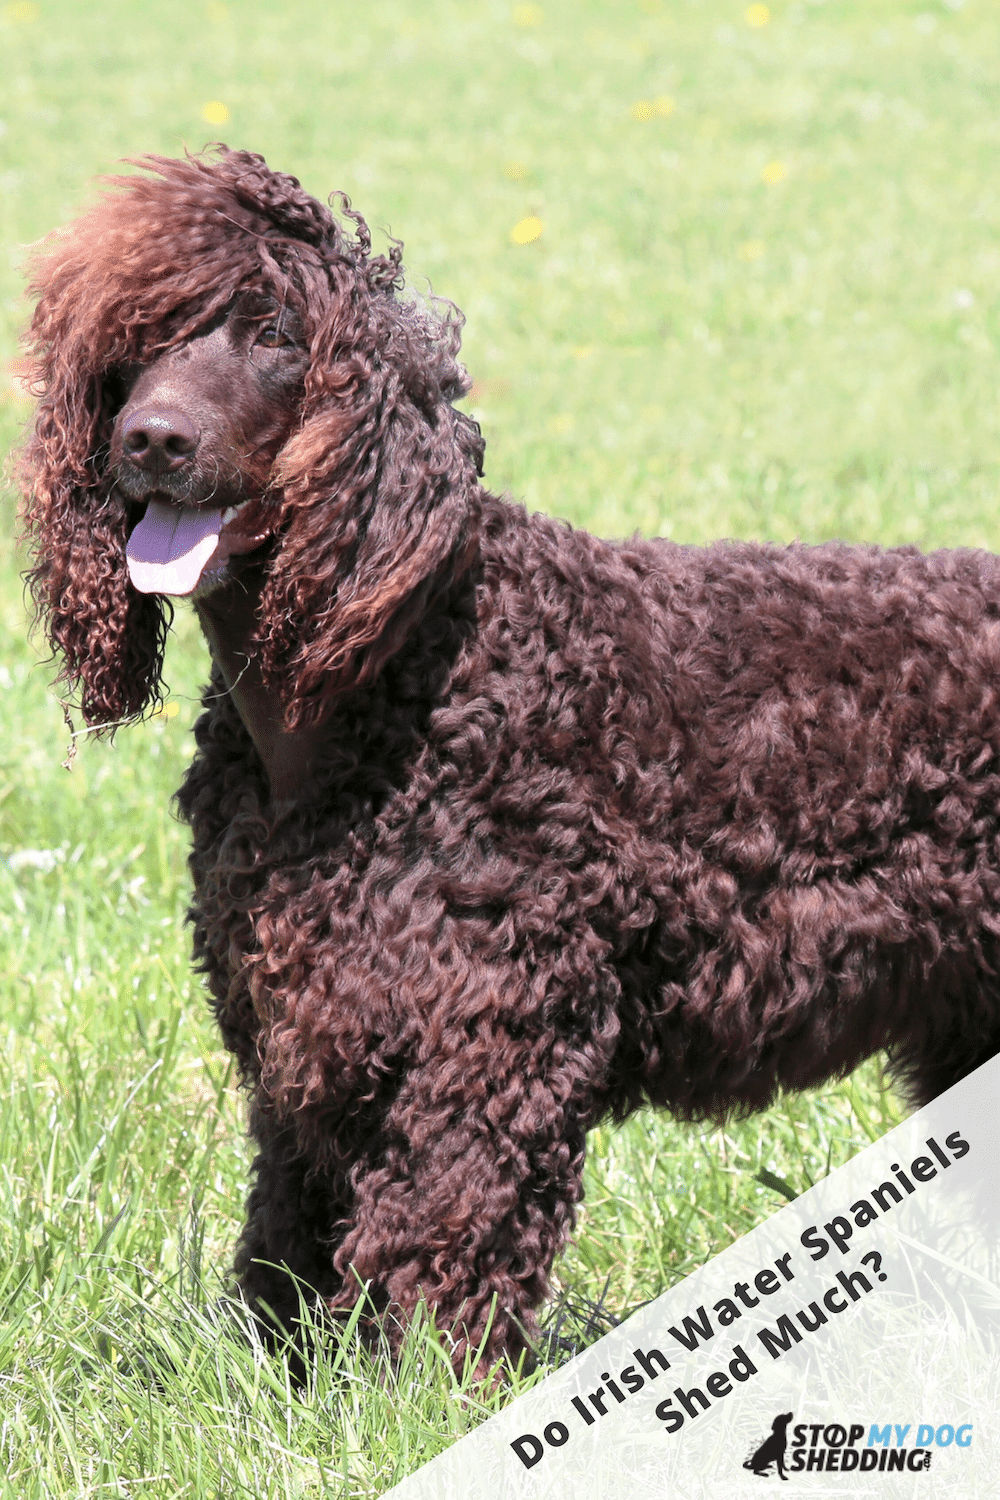 Irish Water Spaniel Shedding (All You Need to Know)